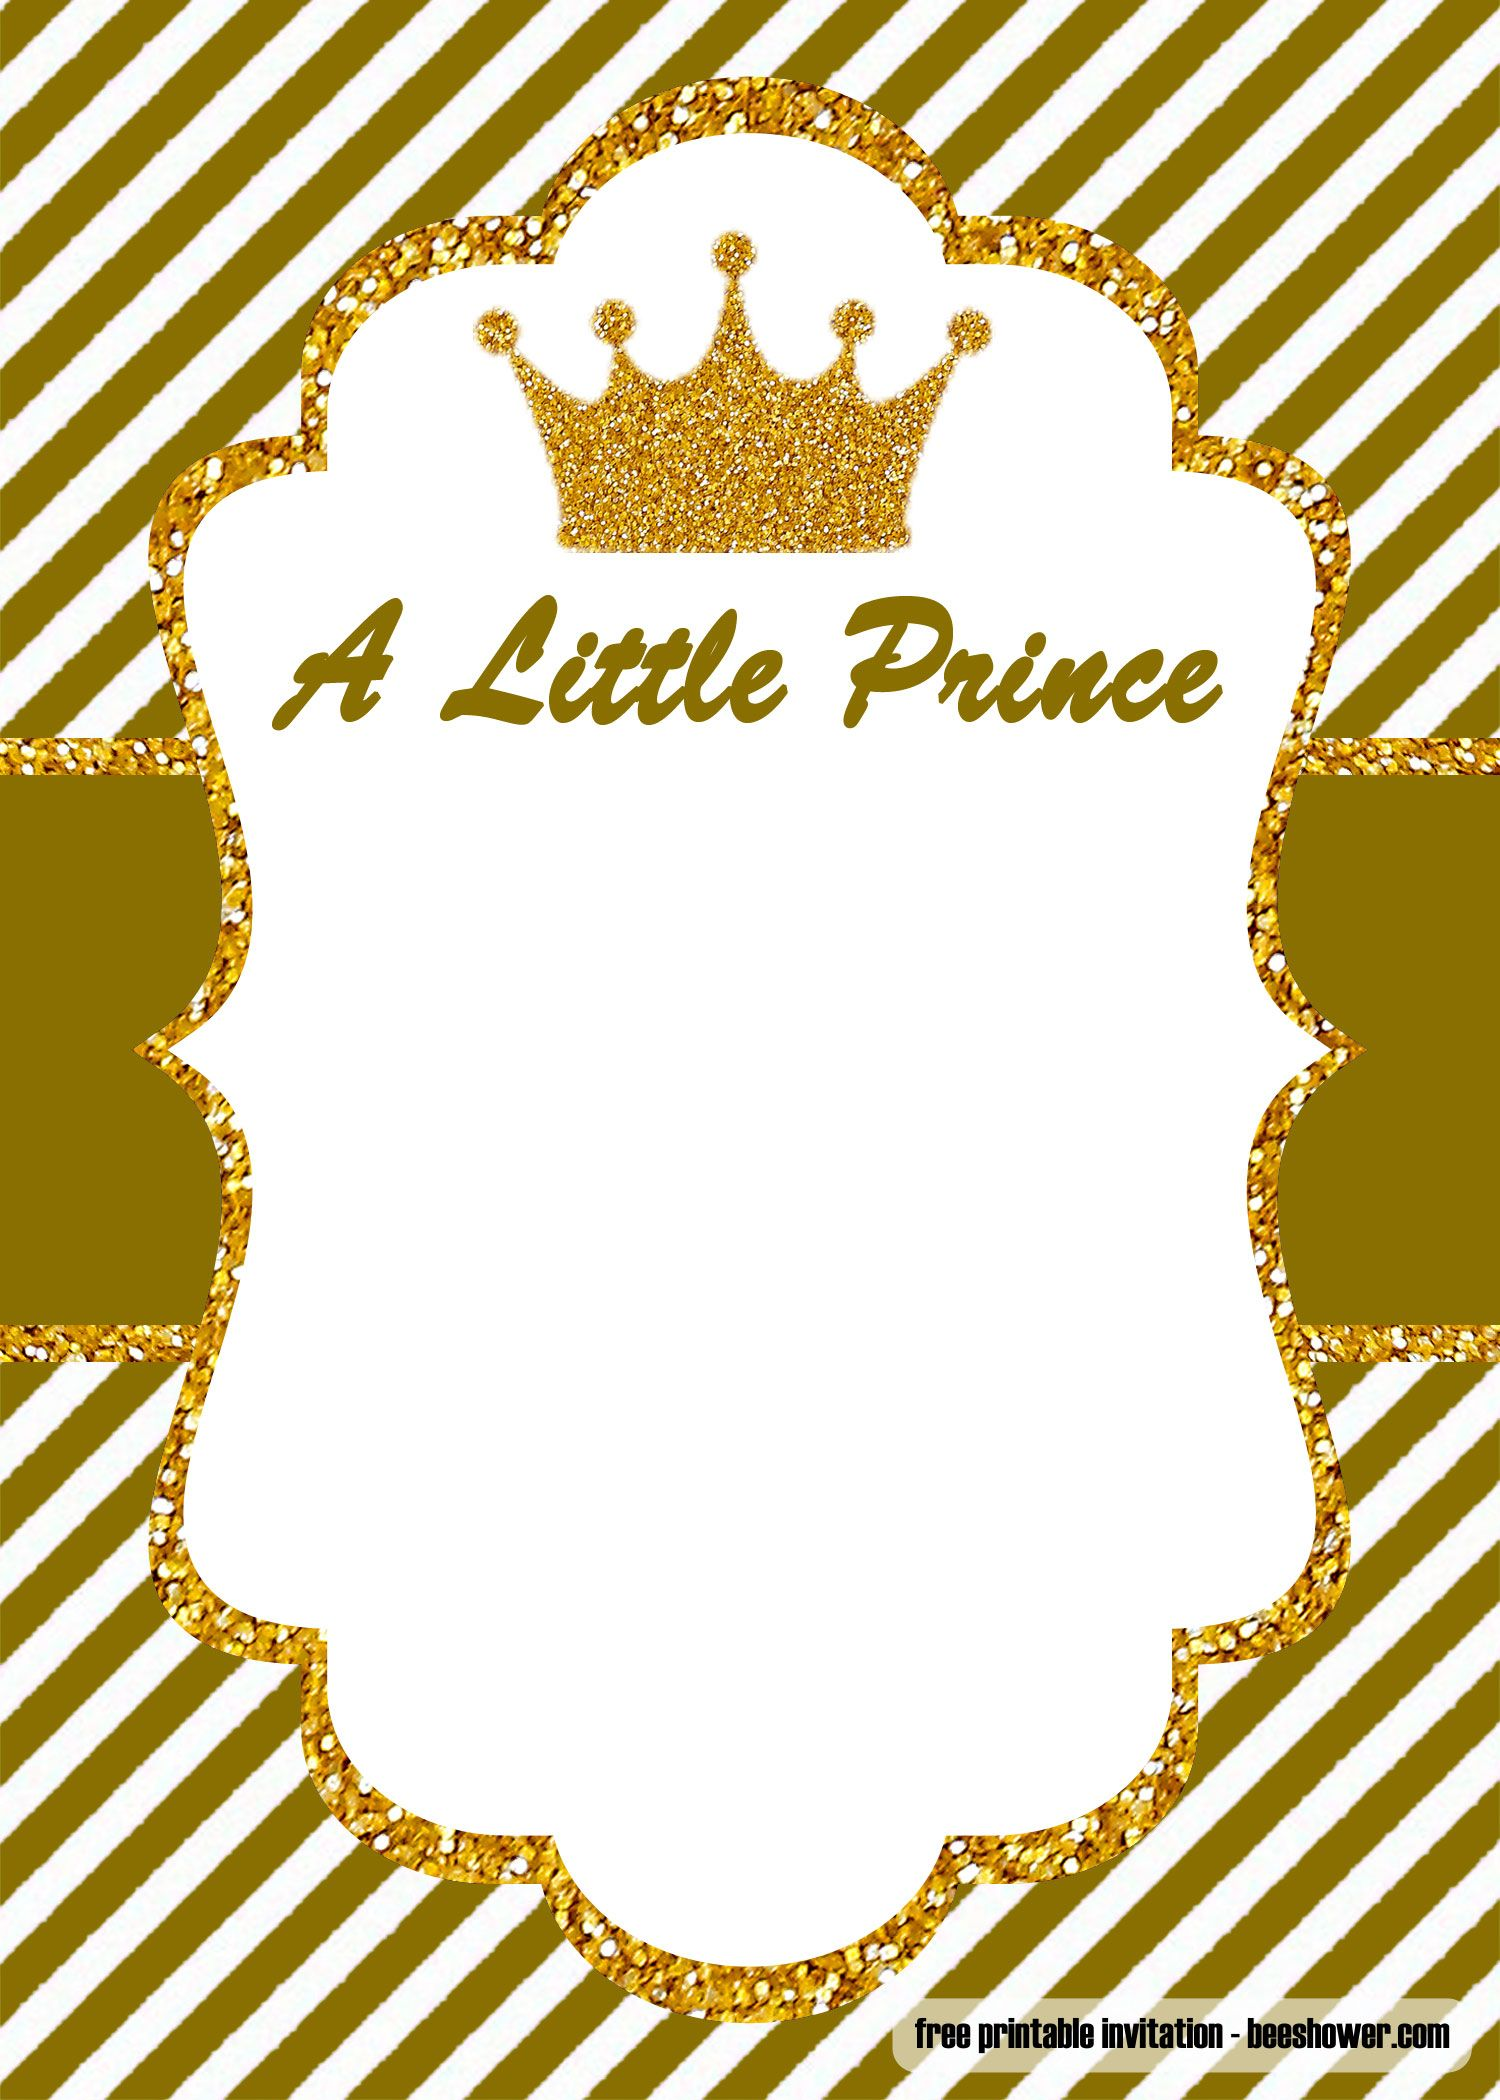 Download Free Little Prince Baby Shower Invitations Tem Prince Baby Shower Invitations Printable Baby Shower Invitations Free Printable Baby Shower Invitations